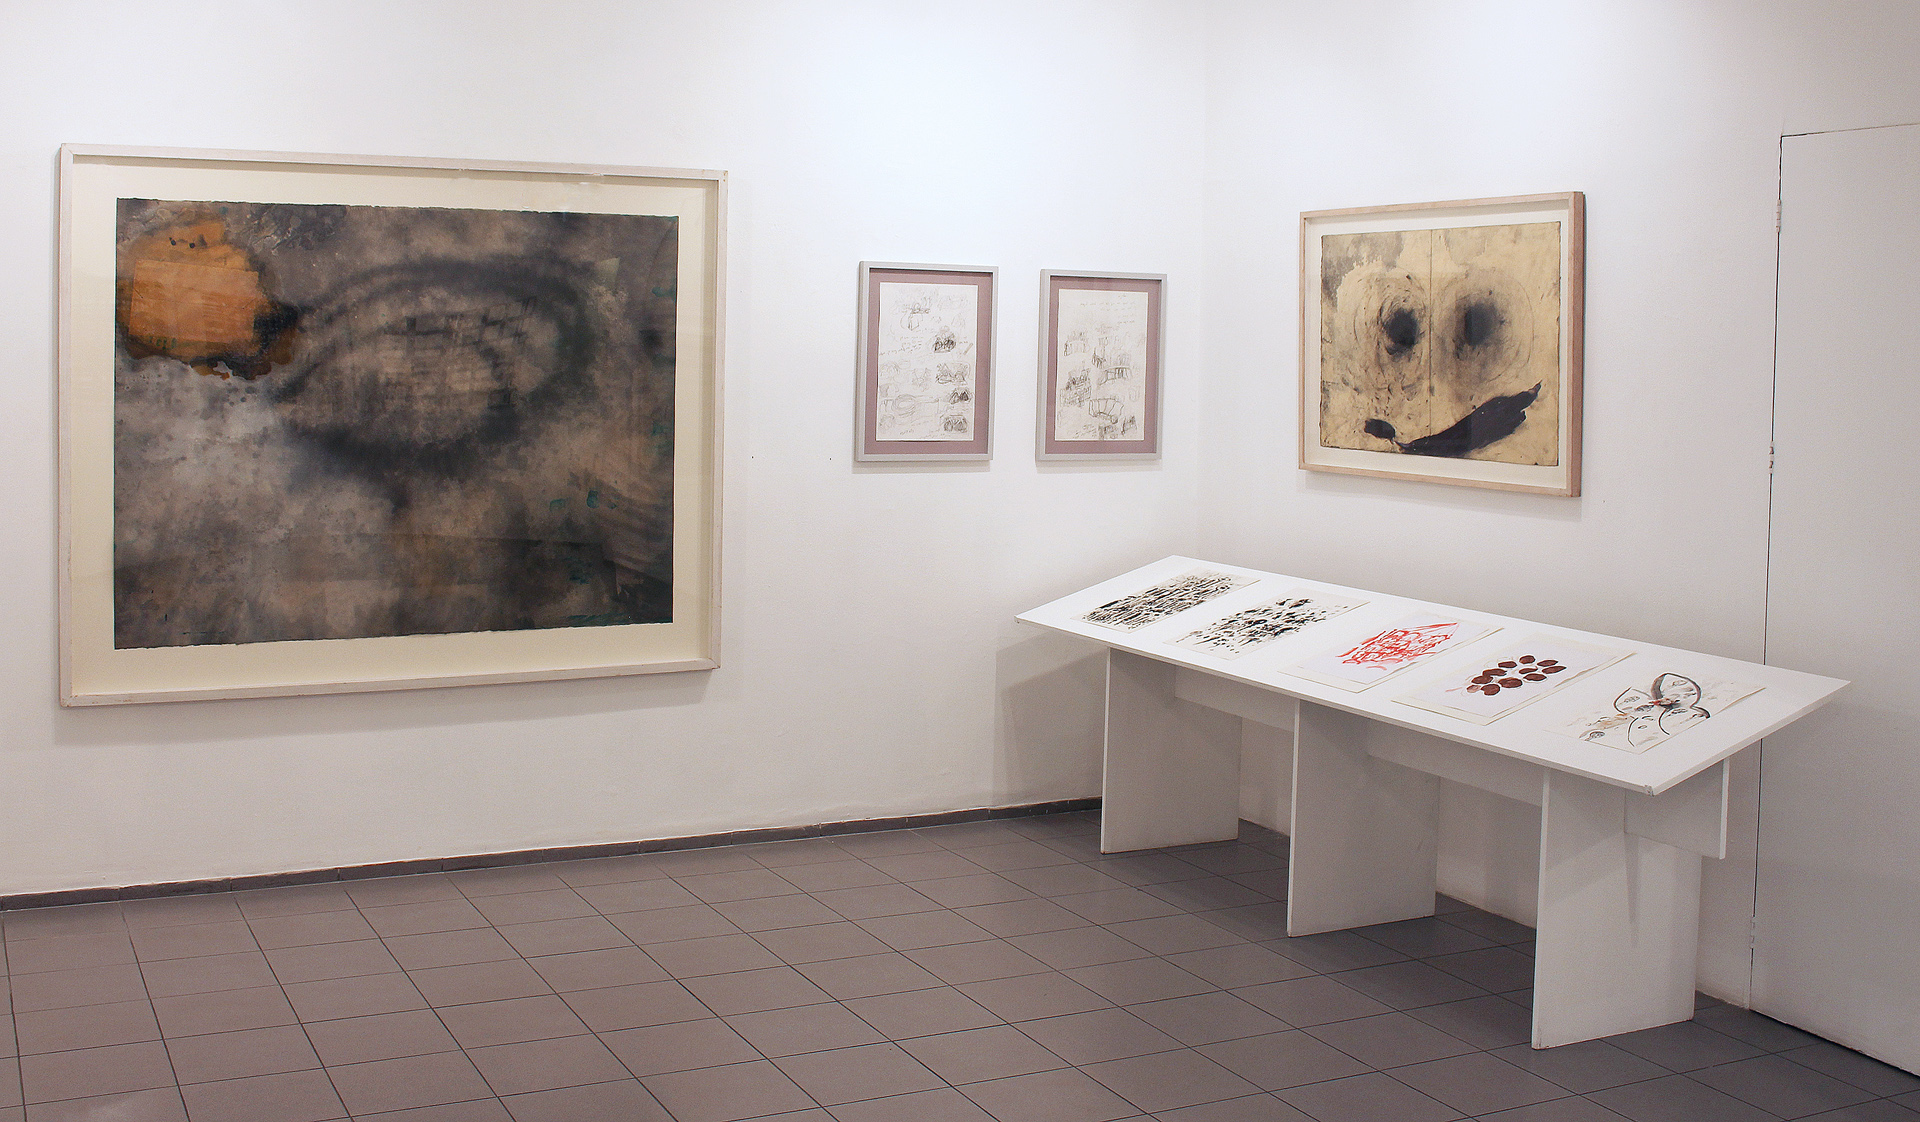 Exhibition view - Givon Art Gallery 2019 Left and right: Moshe Gershuni, center and table: Itzhak Golombek